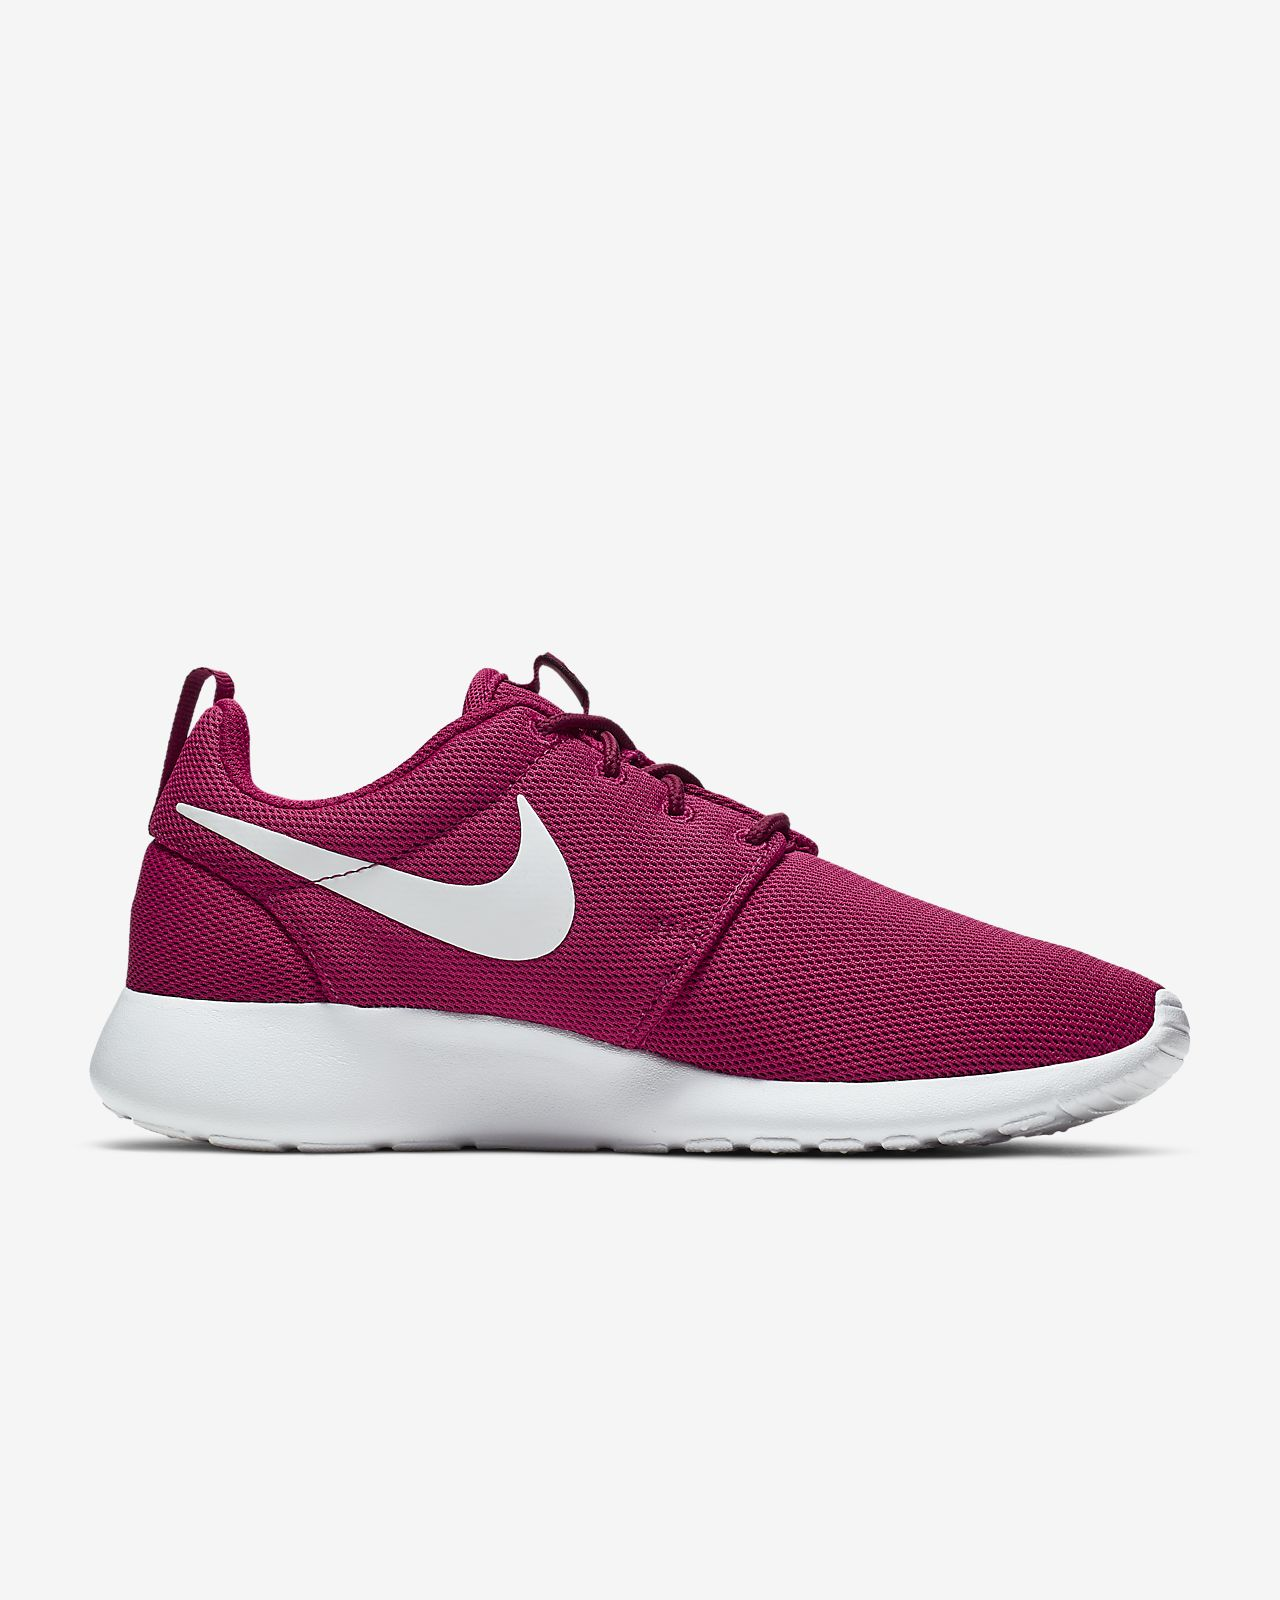 Nike Roshe Run Slip on (Black) size: Women 9